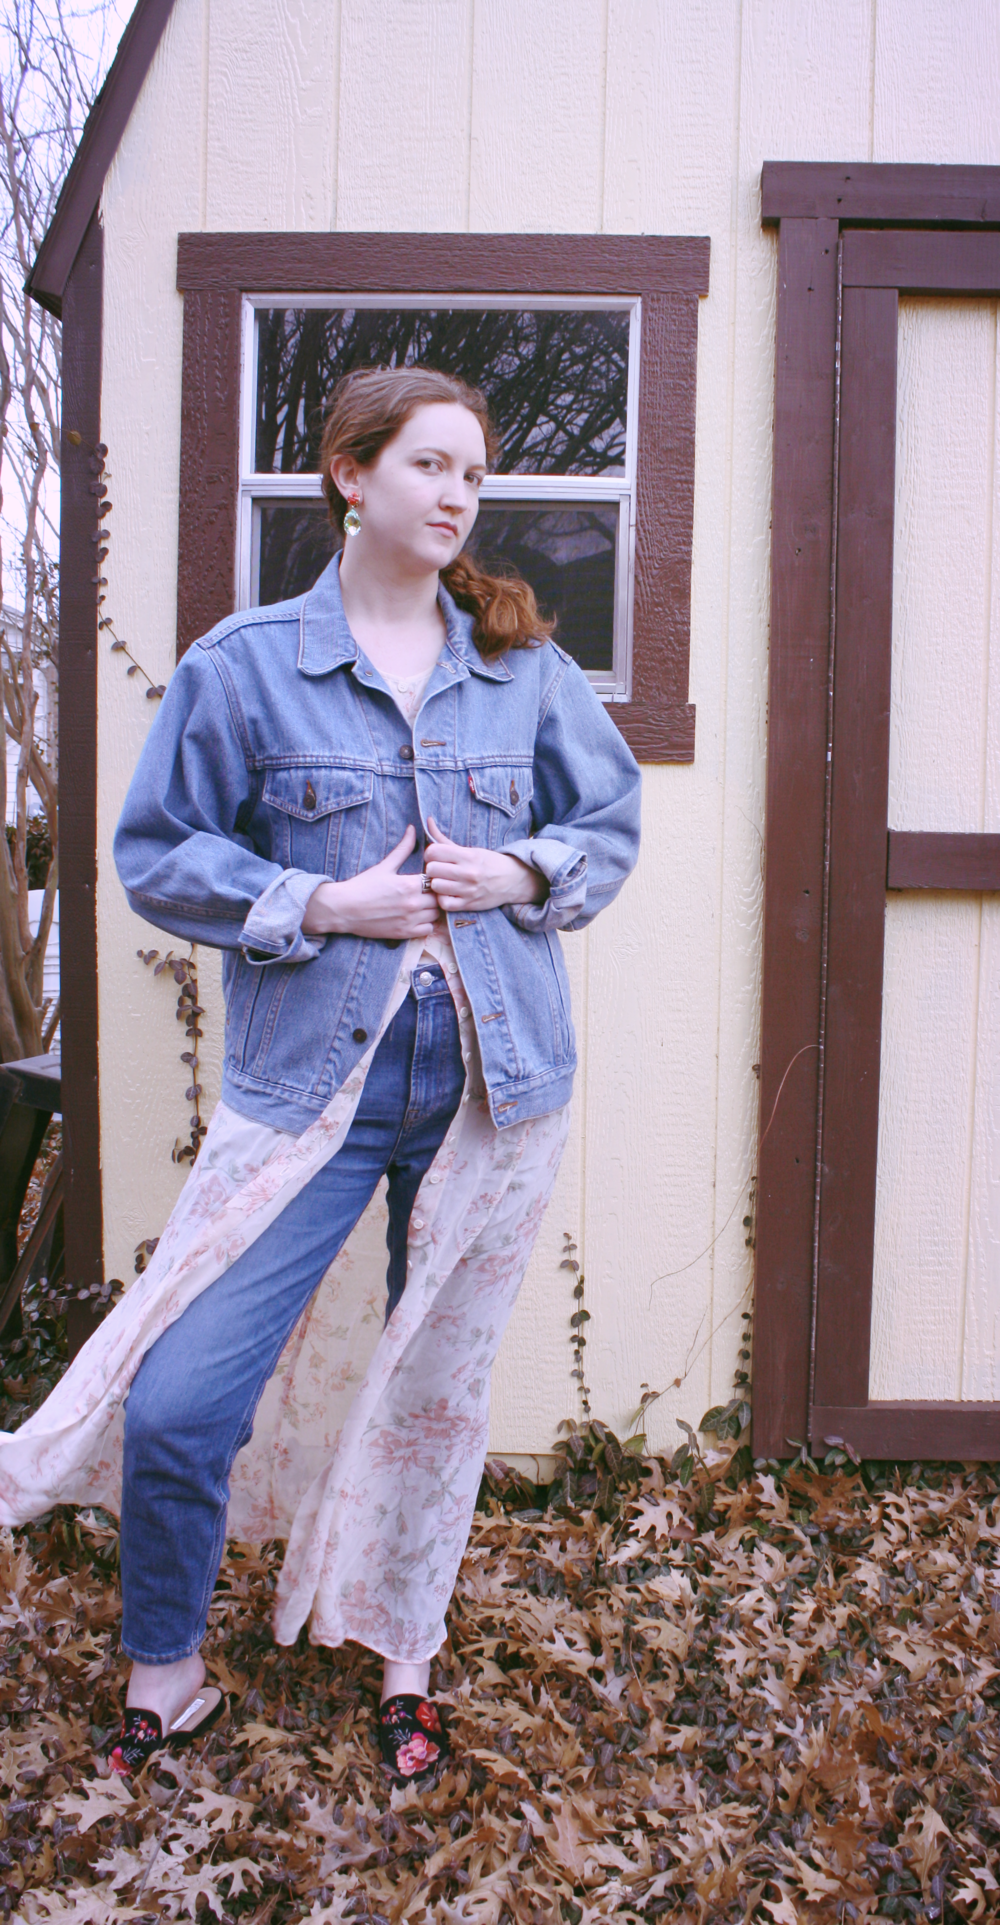 Vintage Levi's Denim Jacket + Reformation Floral Maxi Dress + Everlane Denim + Anna Sui X INC Floral Mules + Roxanne Assoulin Hip Hop But Not Earrings